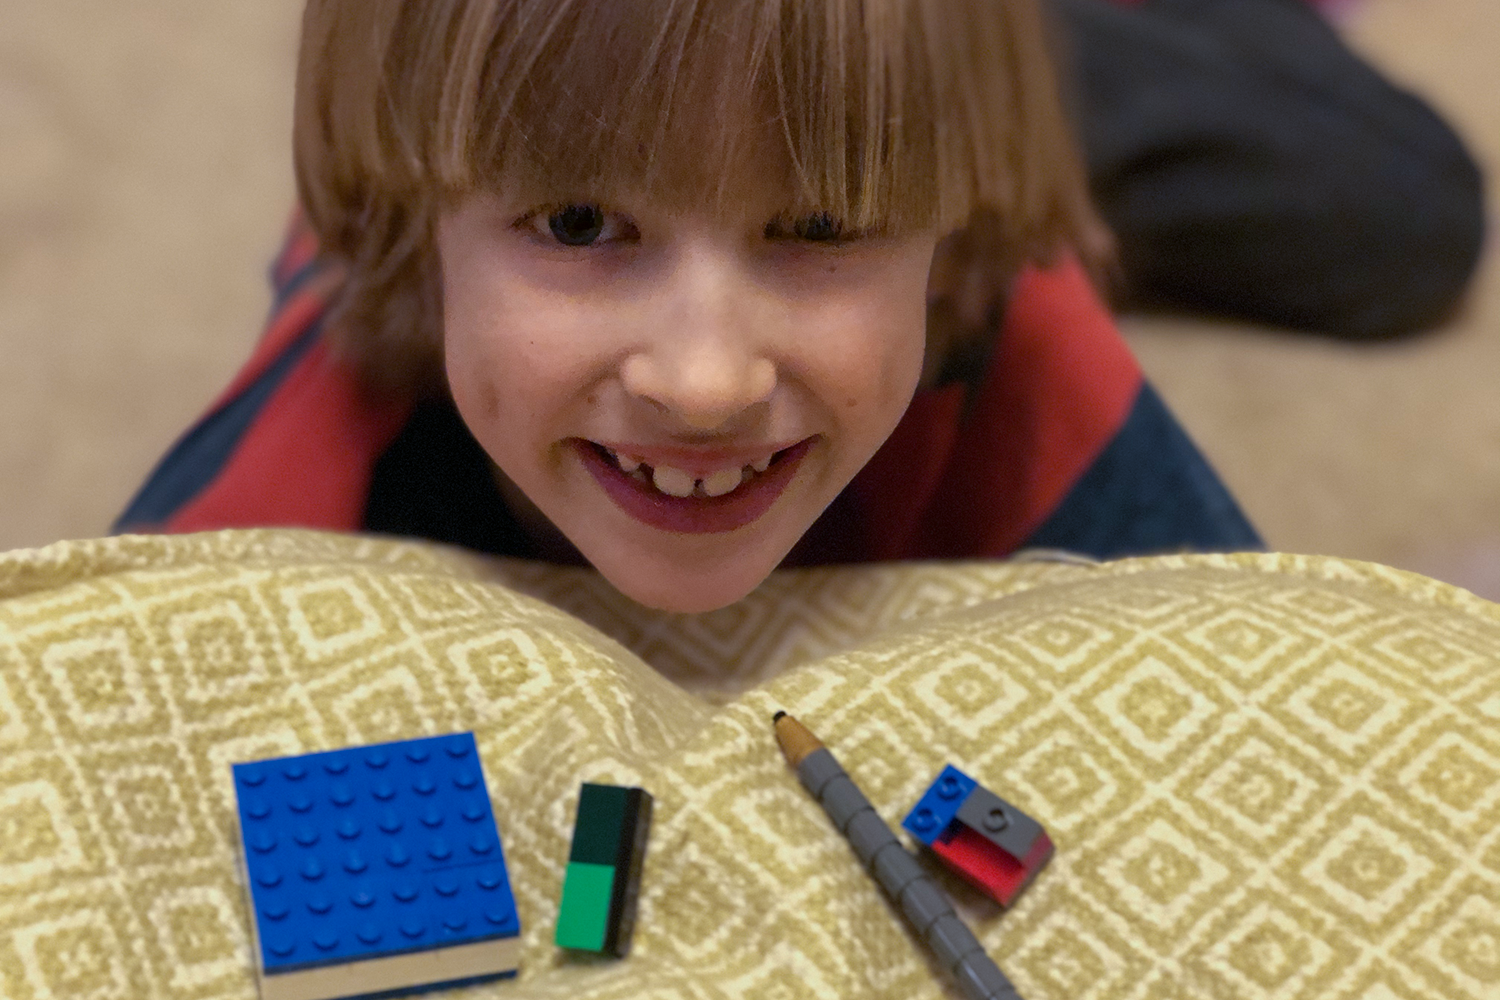 A boy grinning with some Lego on a cushion in front of him